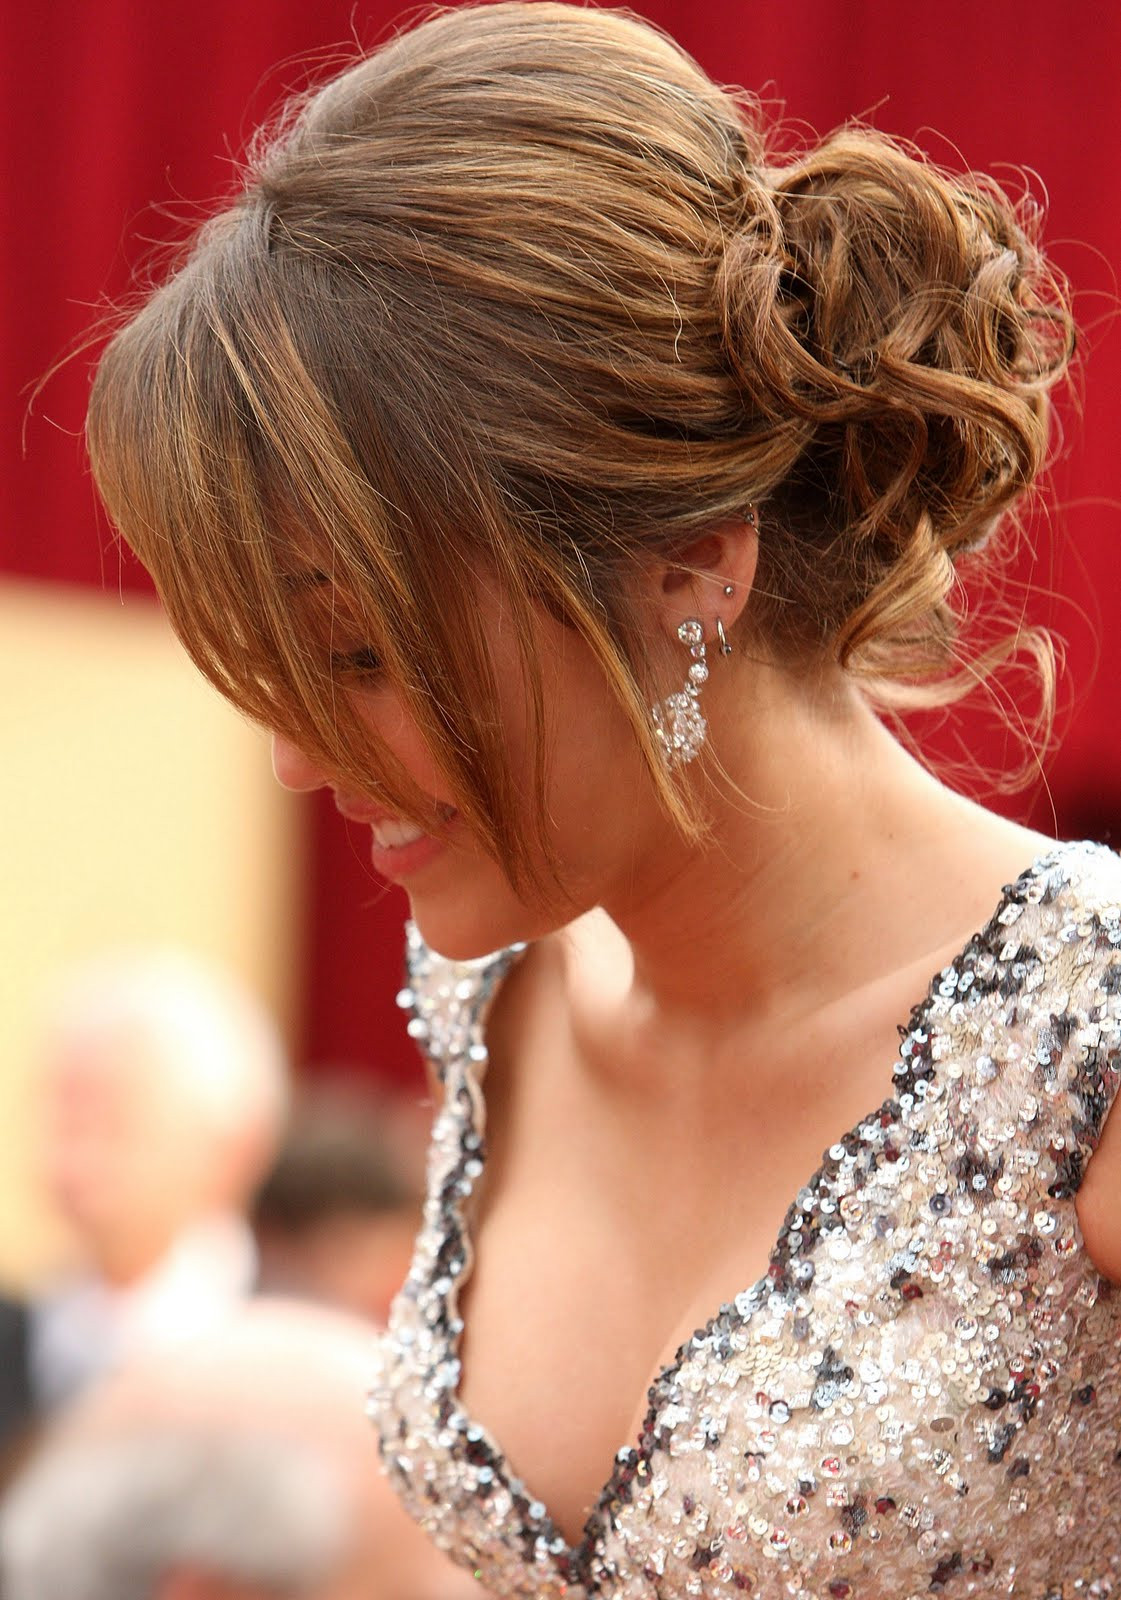 Best ideas about Prom Updo Hairstyles . Save or Pin 15 Cute Hairstyles For Prom 2014 Now.